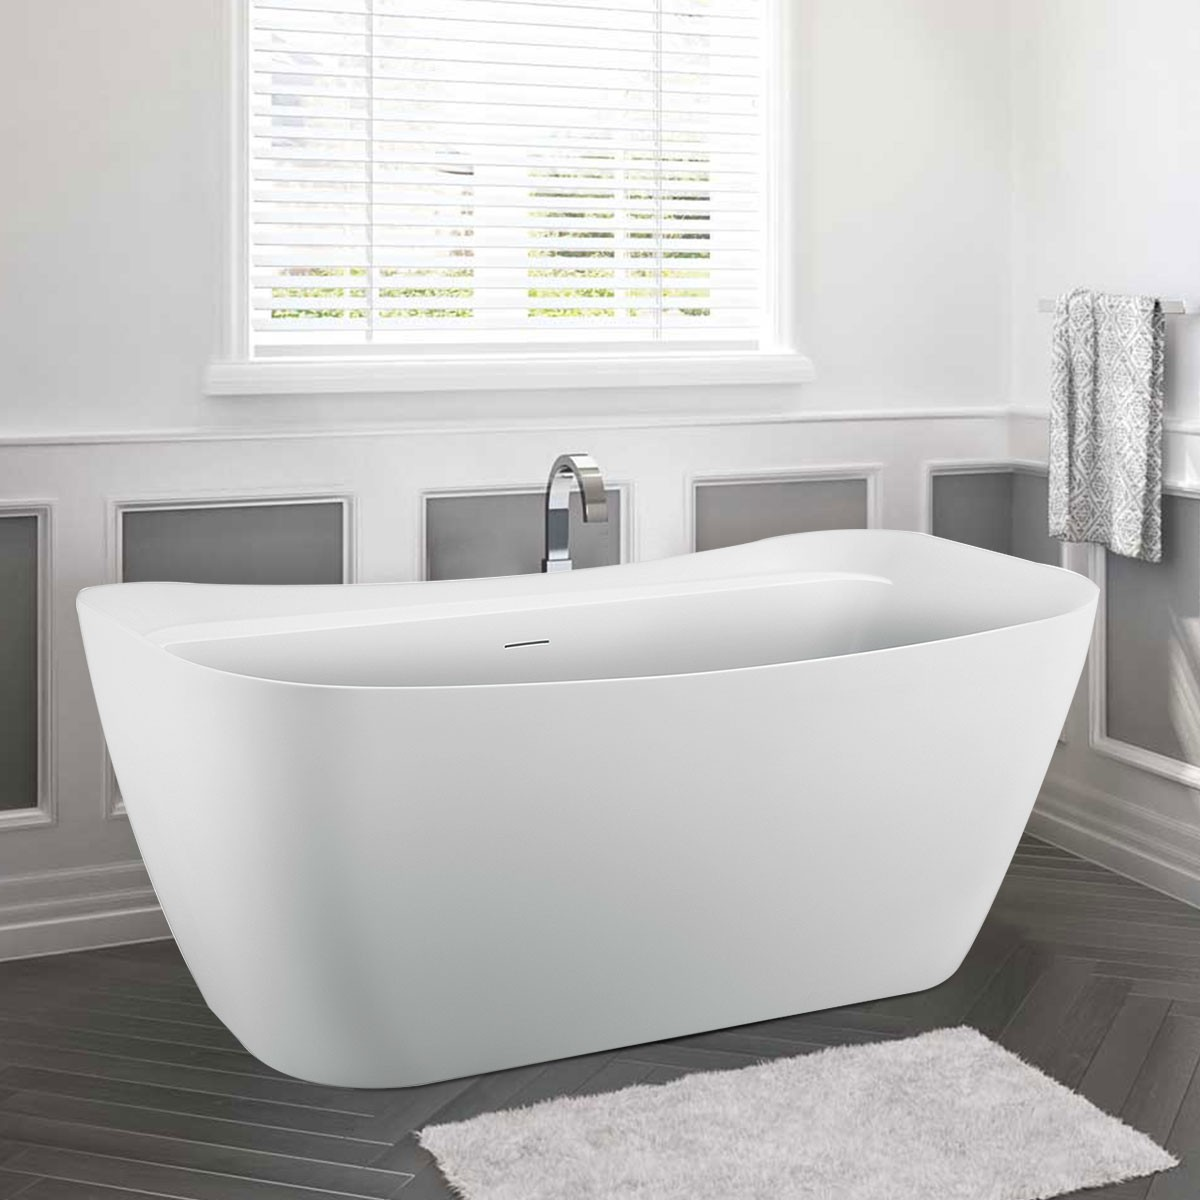 BATHPRO 59 In High-end Freestanding Bathtub - Acrylic Matte White (DK-MF-97578)